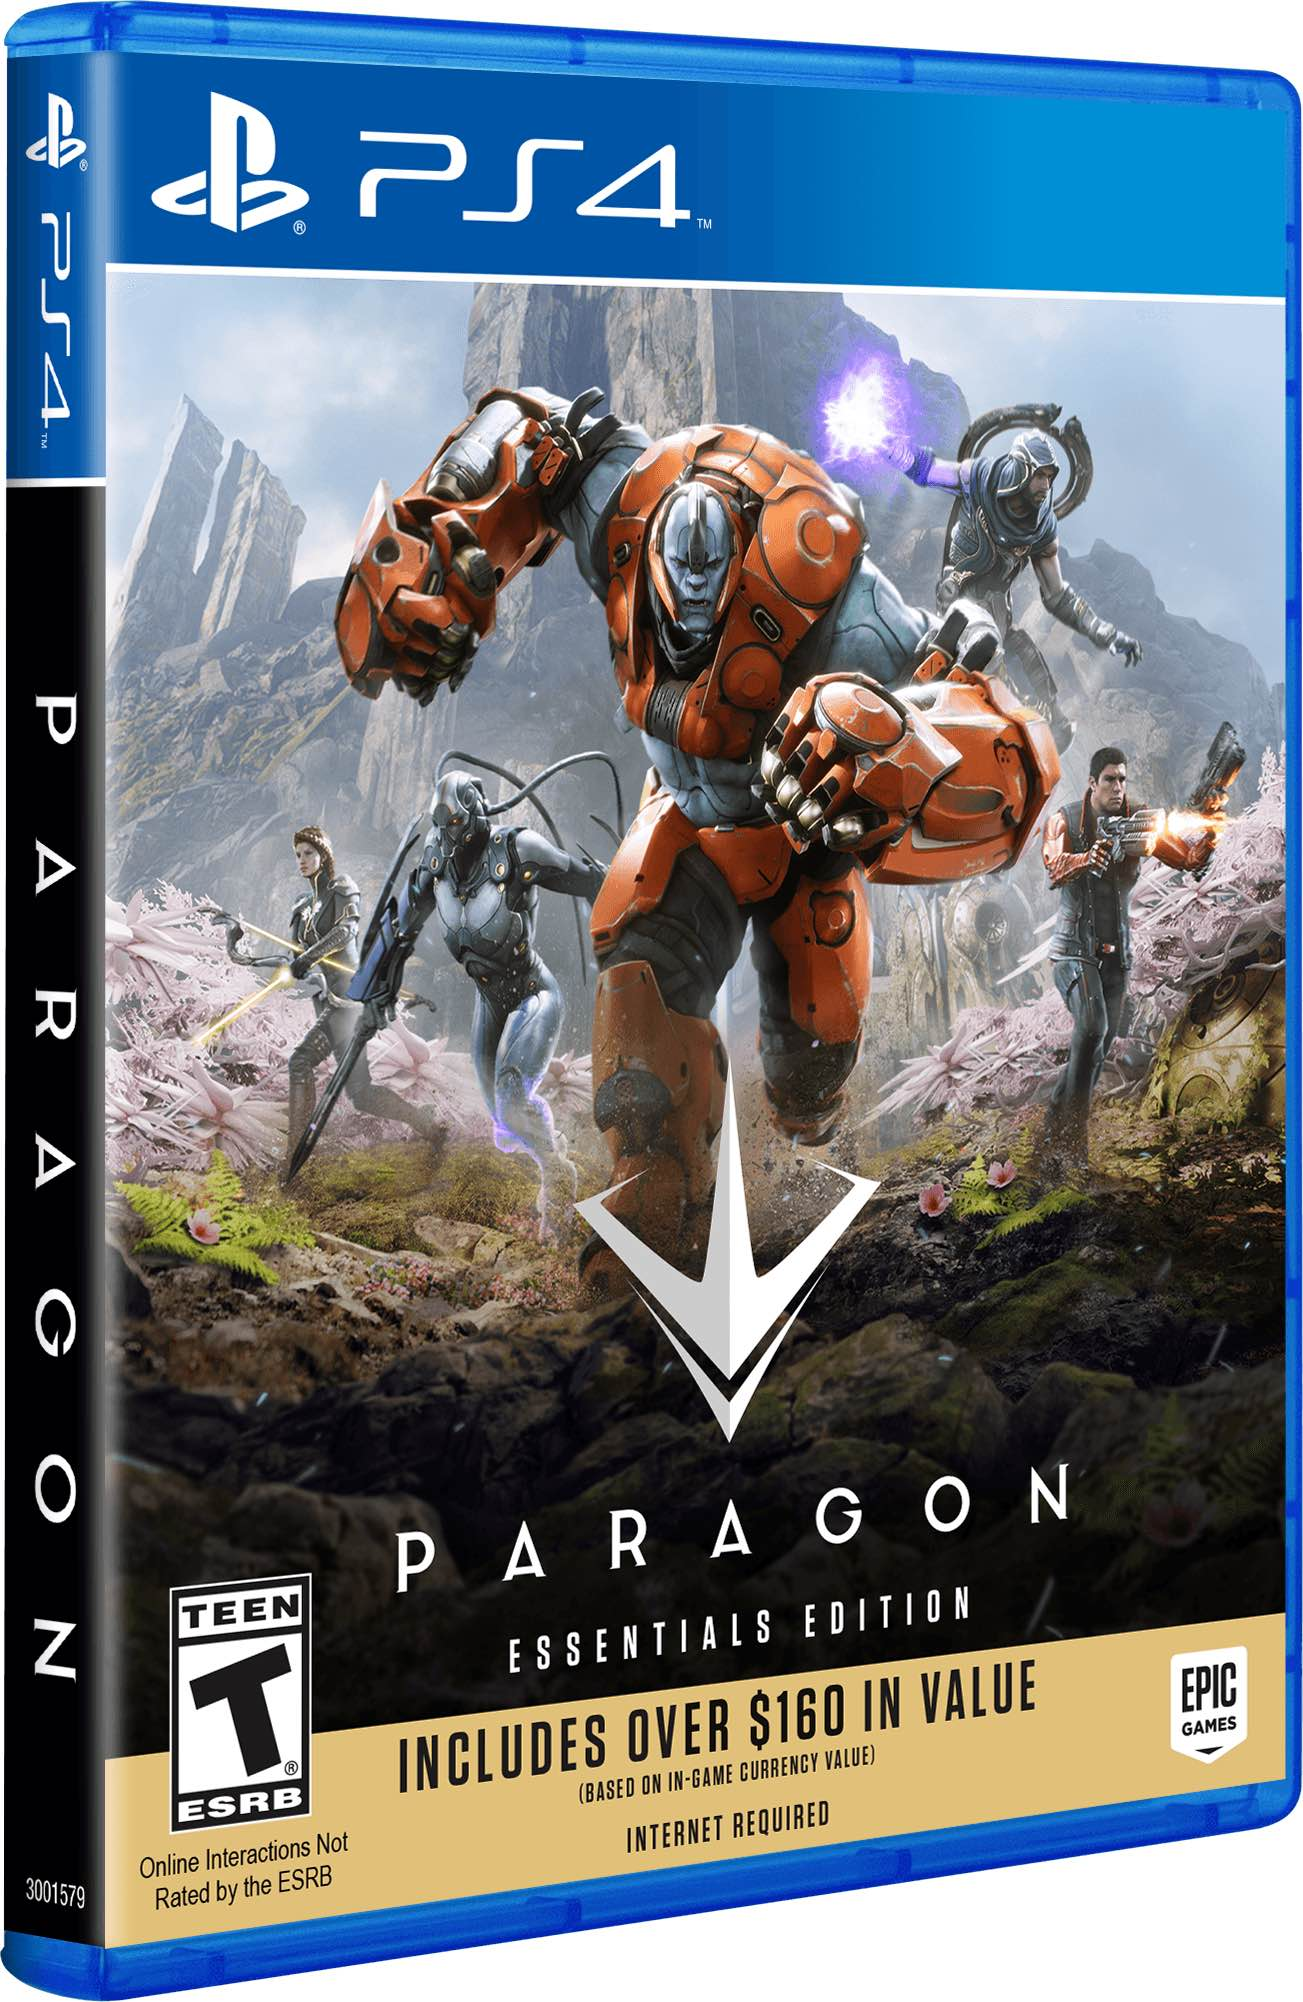 epic games, paragon essentals